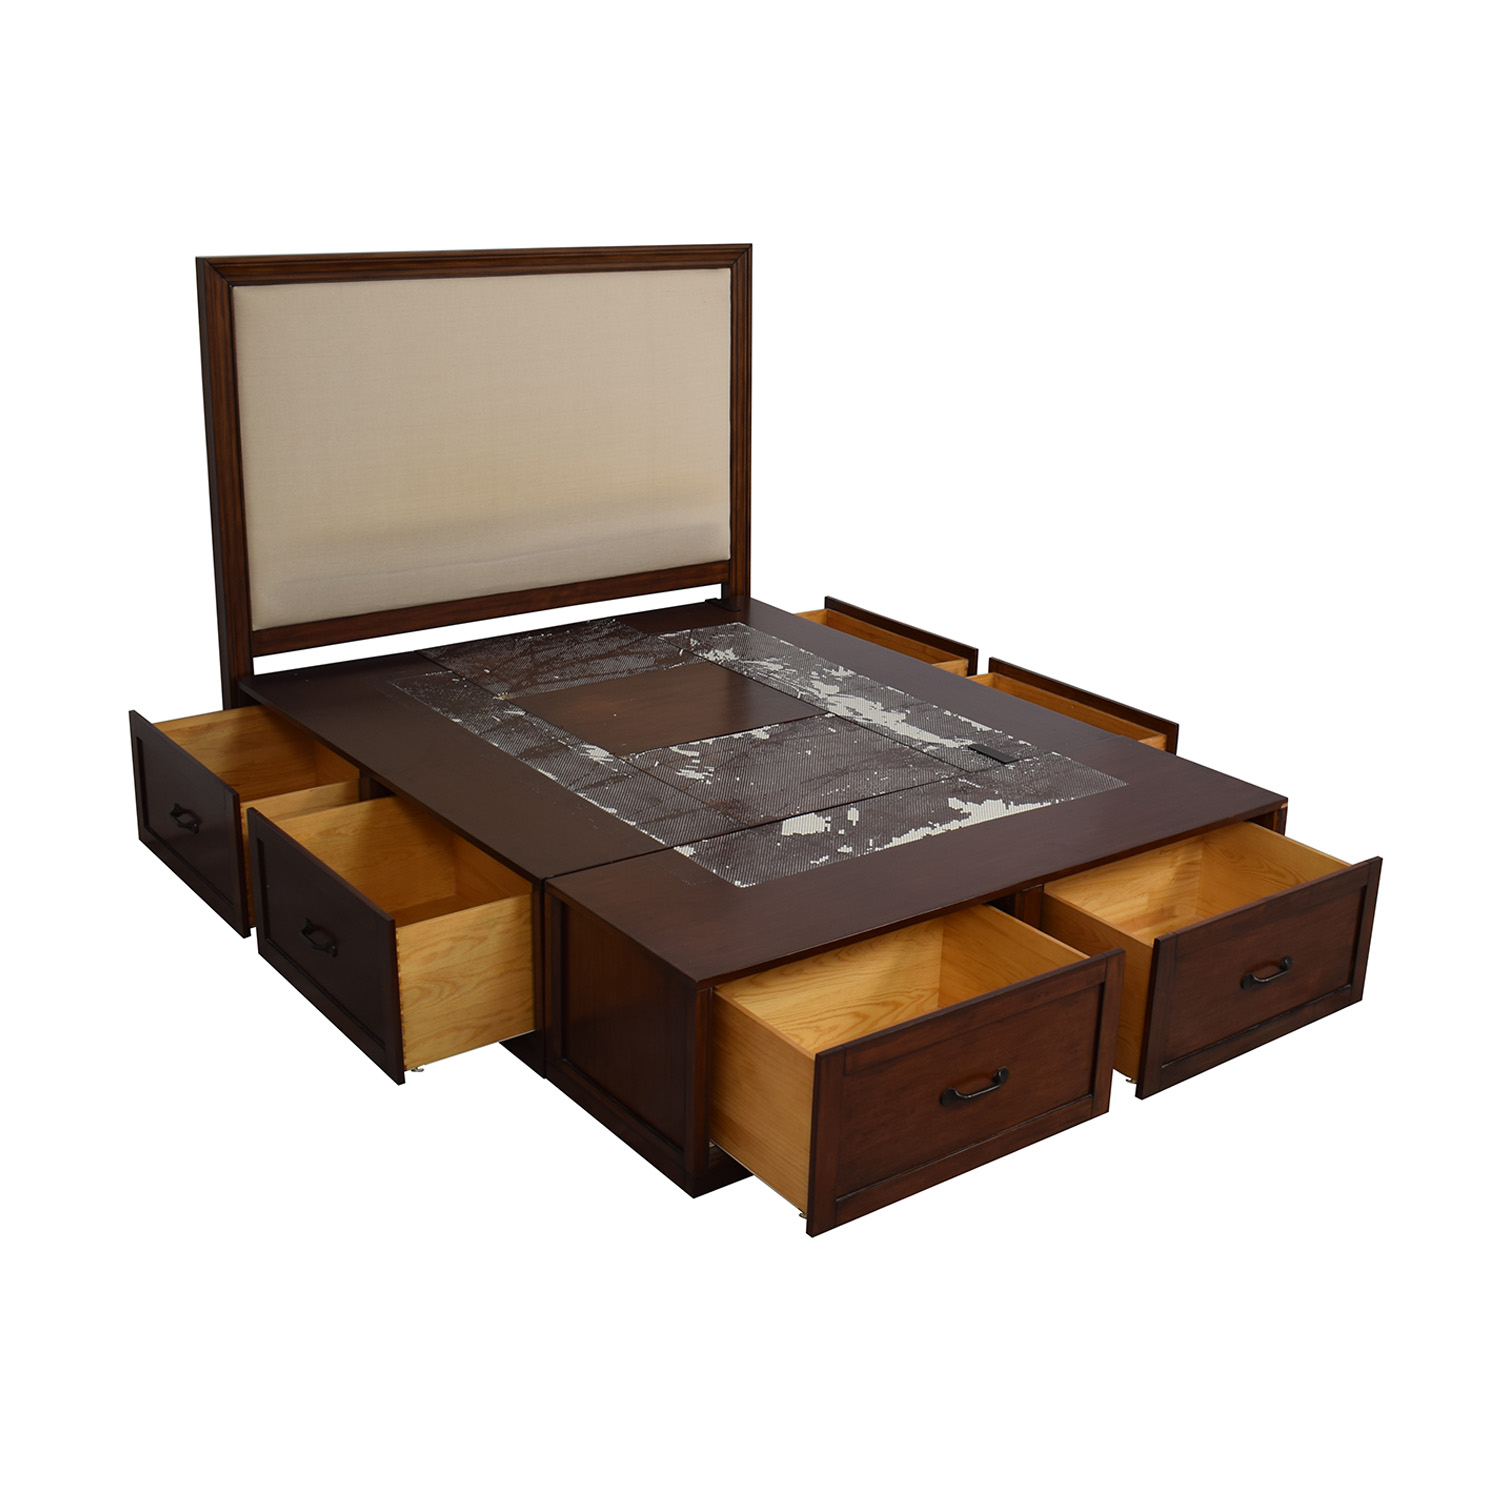 Pottery Barn Pottery Barn Queen Stratton Storage Bed nyc